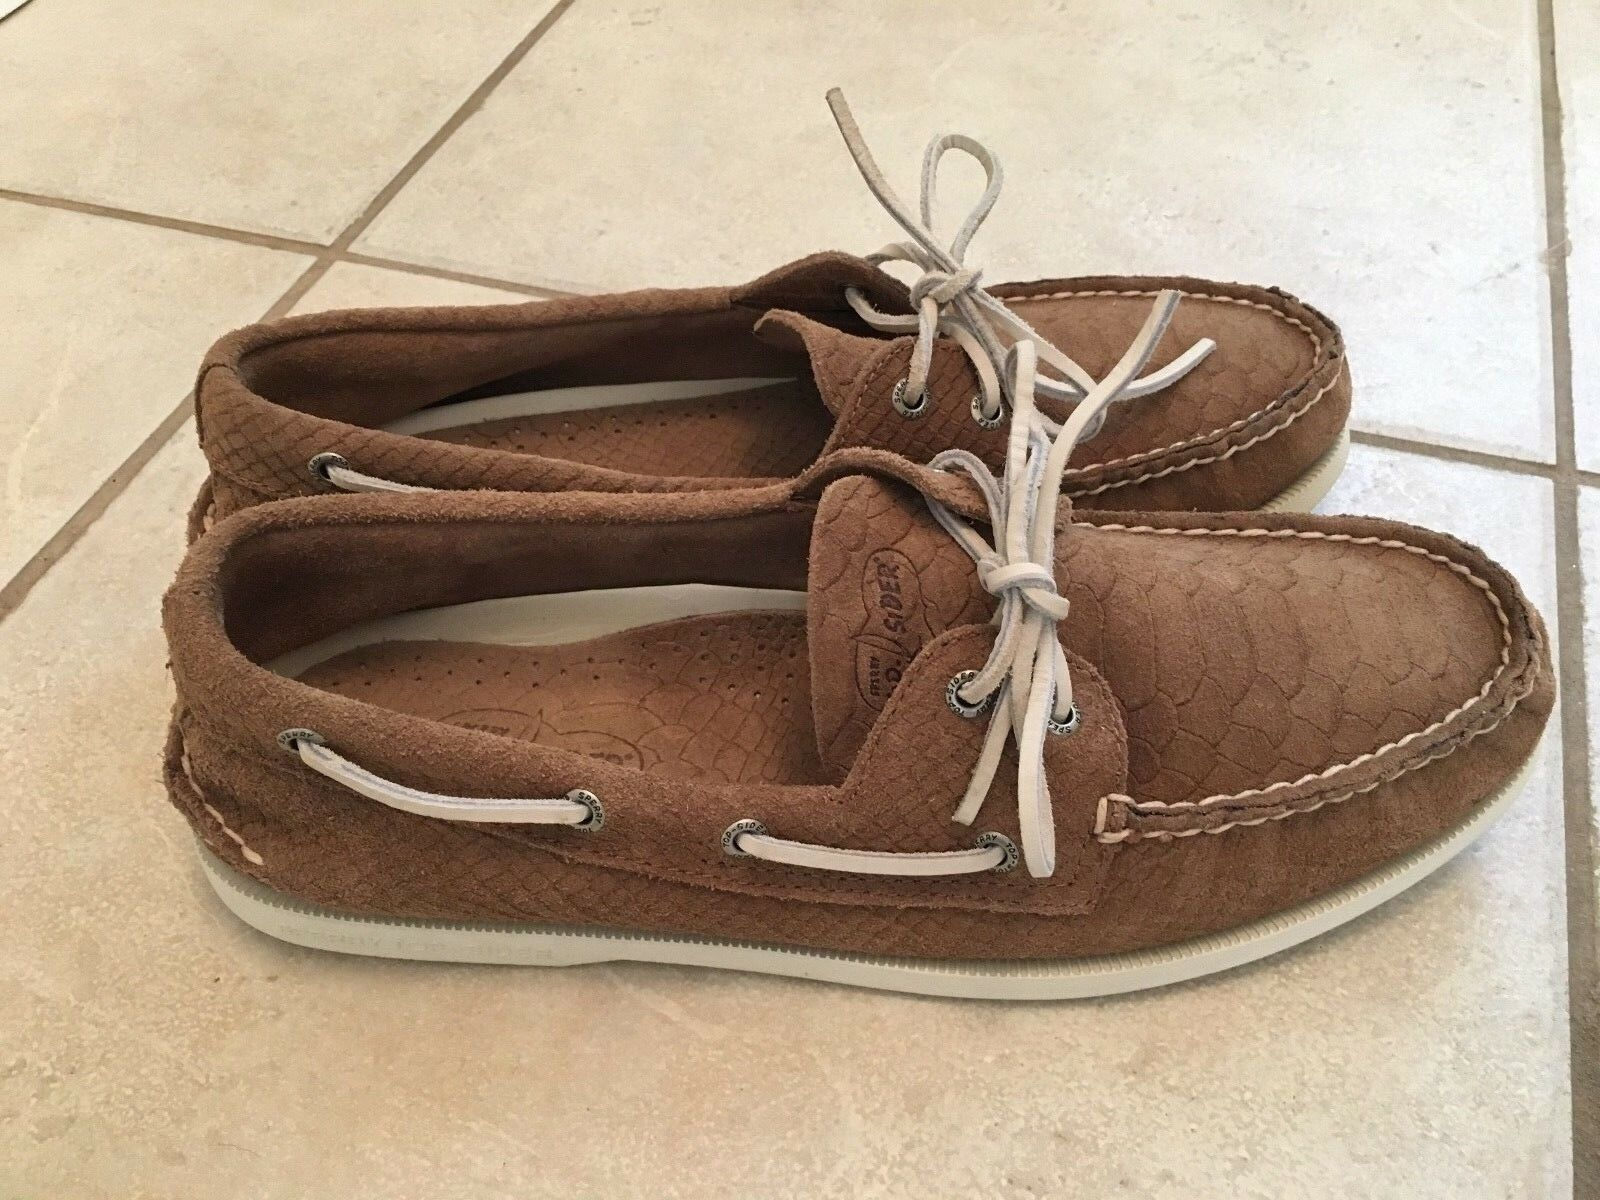 ULTRA RARE Sperry Top Sider Croc/Gator/Snake Skin Tan Suede Outer!! Mens sz 11.5